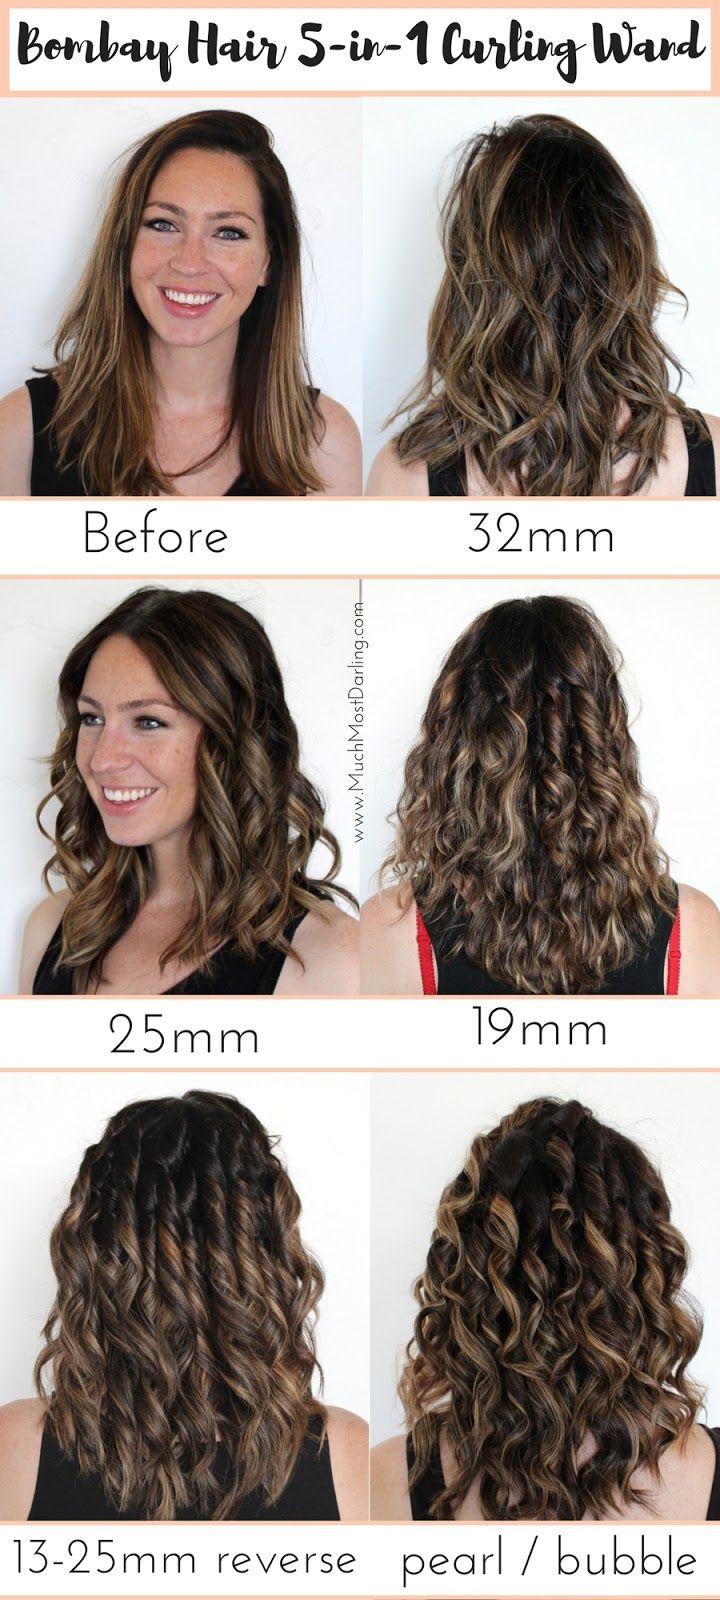 """This quick infographic and tutorial will give you a visual difference between the 5 wands included in the Bombay Hair 5-in-1 Curling Wand: the 32mm vs 25mm vs 13-25mm (reverse) vs 19mm vs Pearl / Bubble wand.  Each of the five interchangeable barrels are tourmaline infused with ceramic and emit infrared negative ions, which means frizz free curls and styles. Use code """"SHYNNZ"""" to save 50% off all hair tools from Bombay!"""